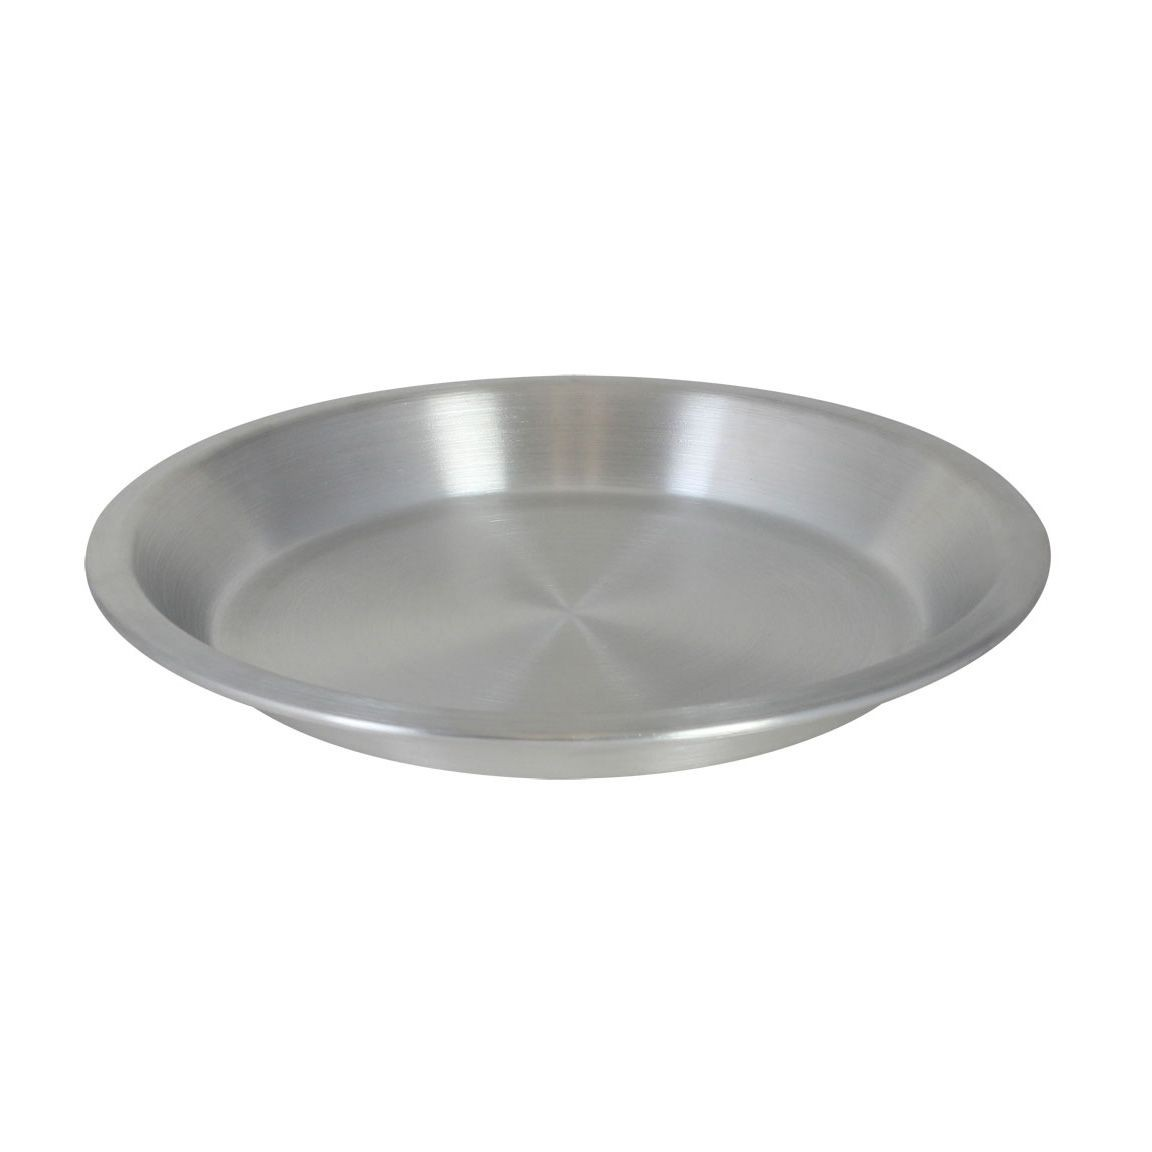 Thunder Group ALPN012 Pie Pan 12""